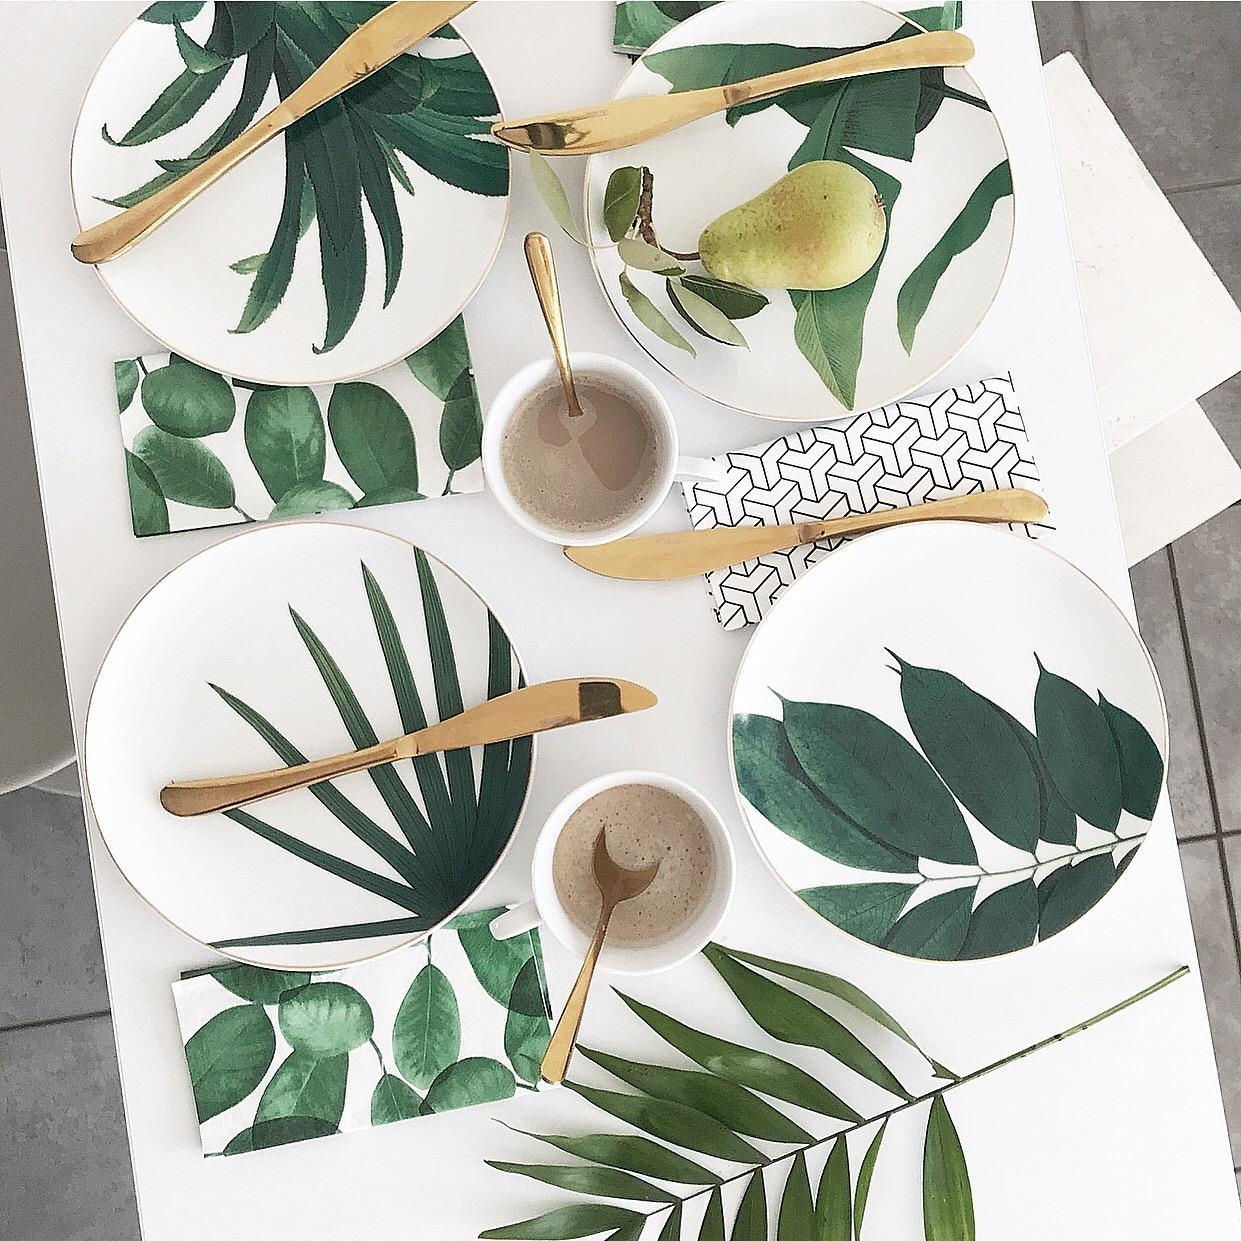 Tischdeko im Botanical Urban Jungle Look mit Gold #urbanjungle #tischdeko #greenery #geschirr #inspiration #keramik